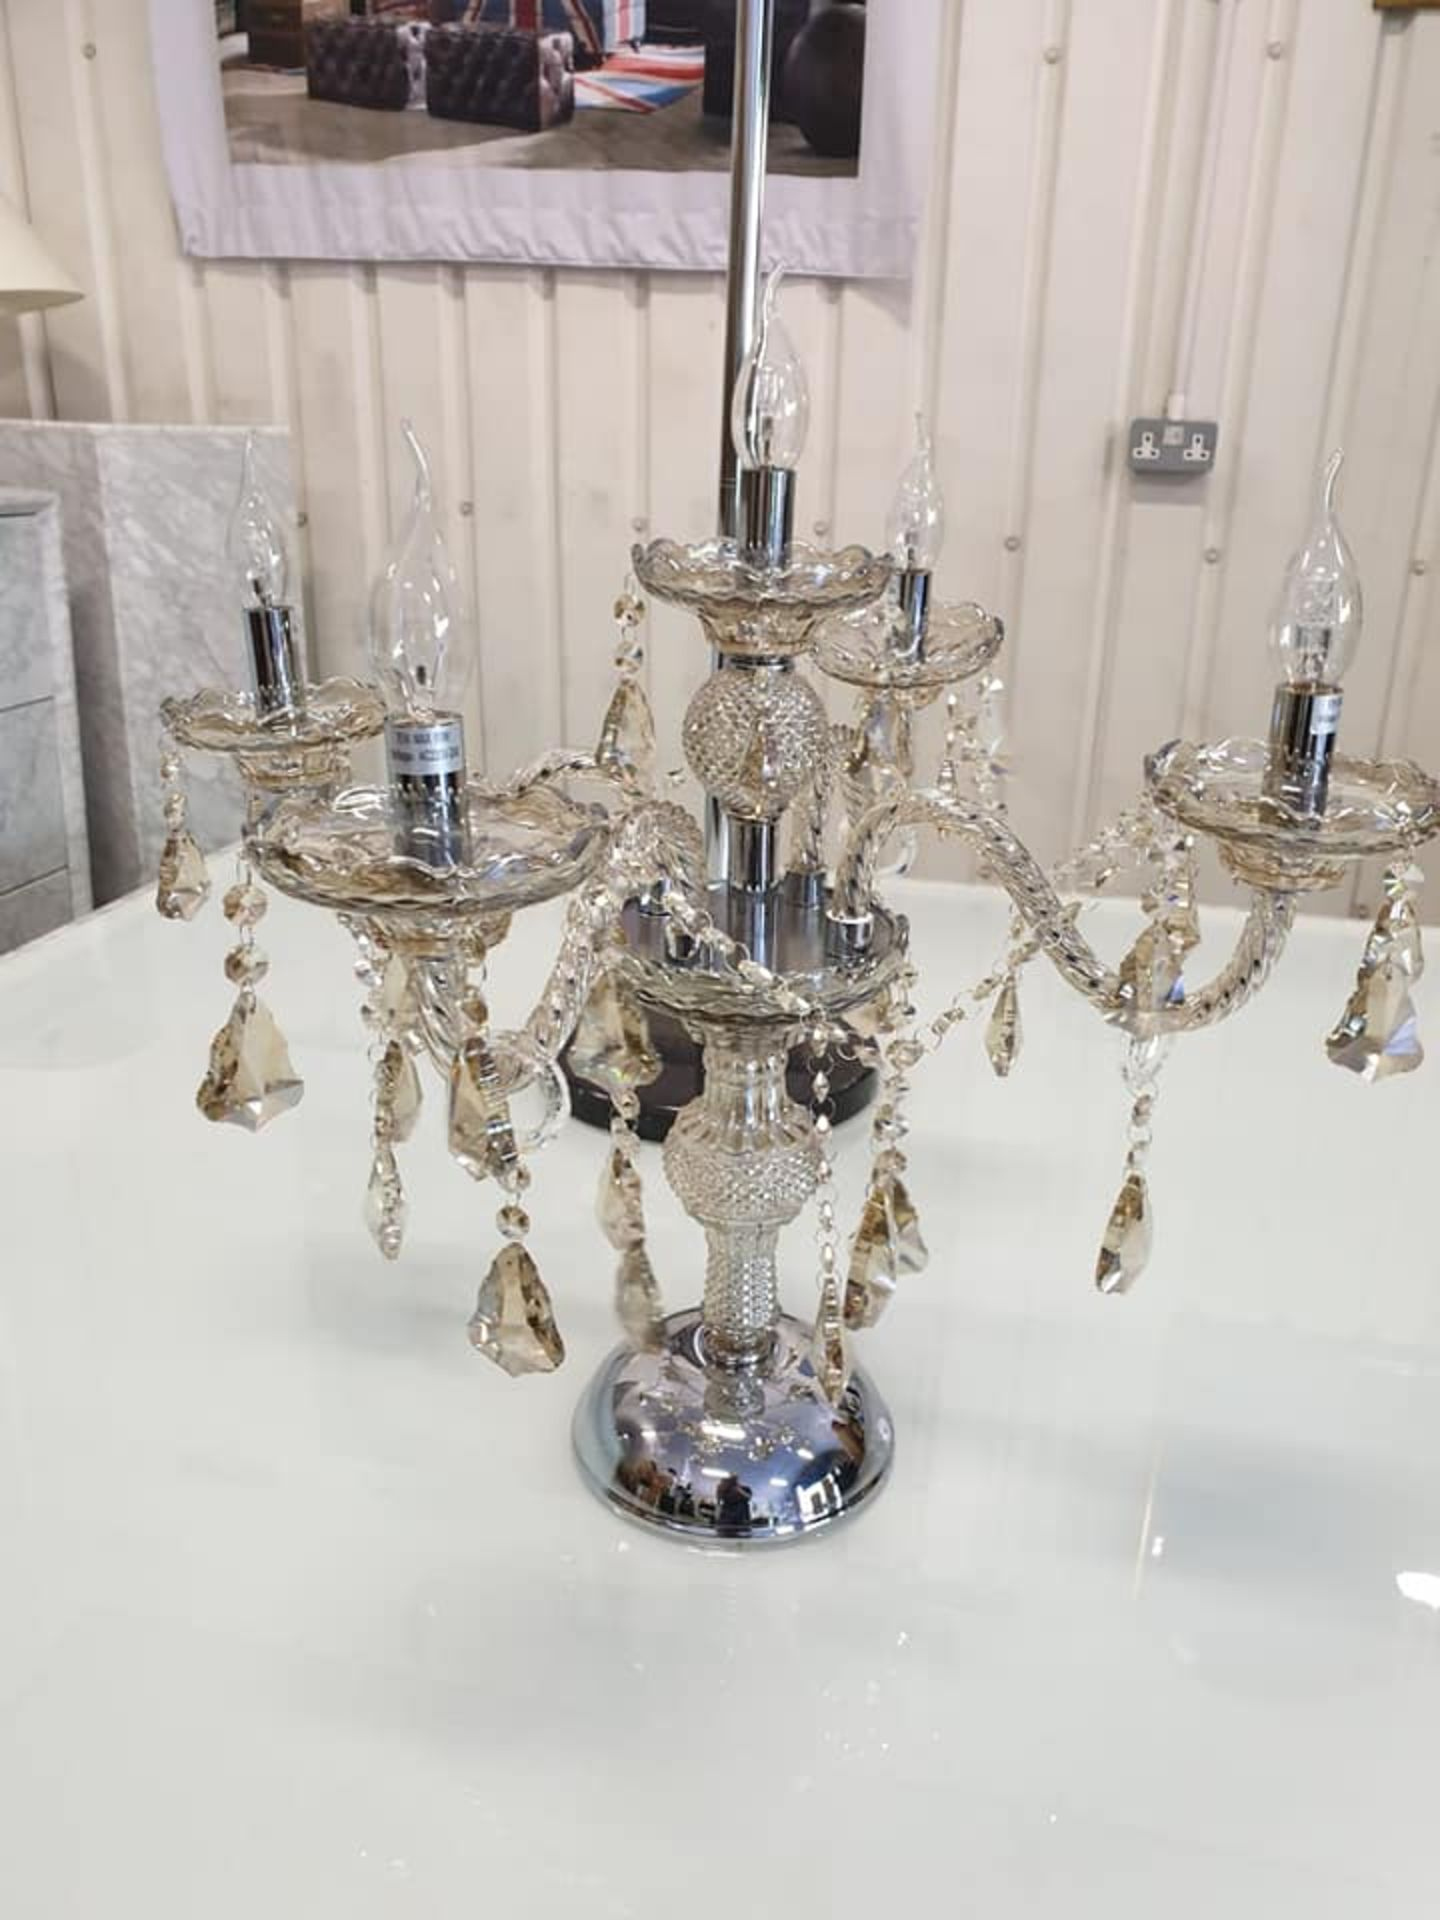 Lot 44 - Crystal Table Lamp The Crystal Lighting Collection Is Inspired By The Elaborate Designs Of Late